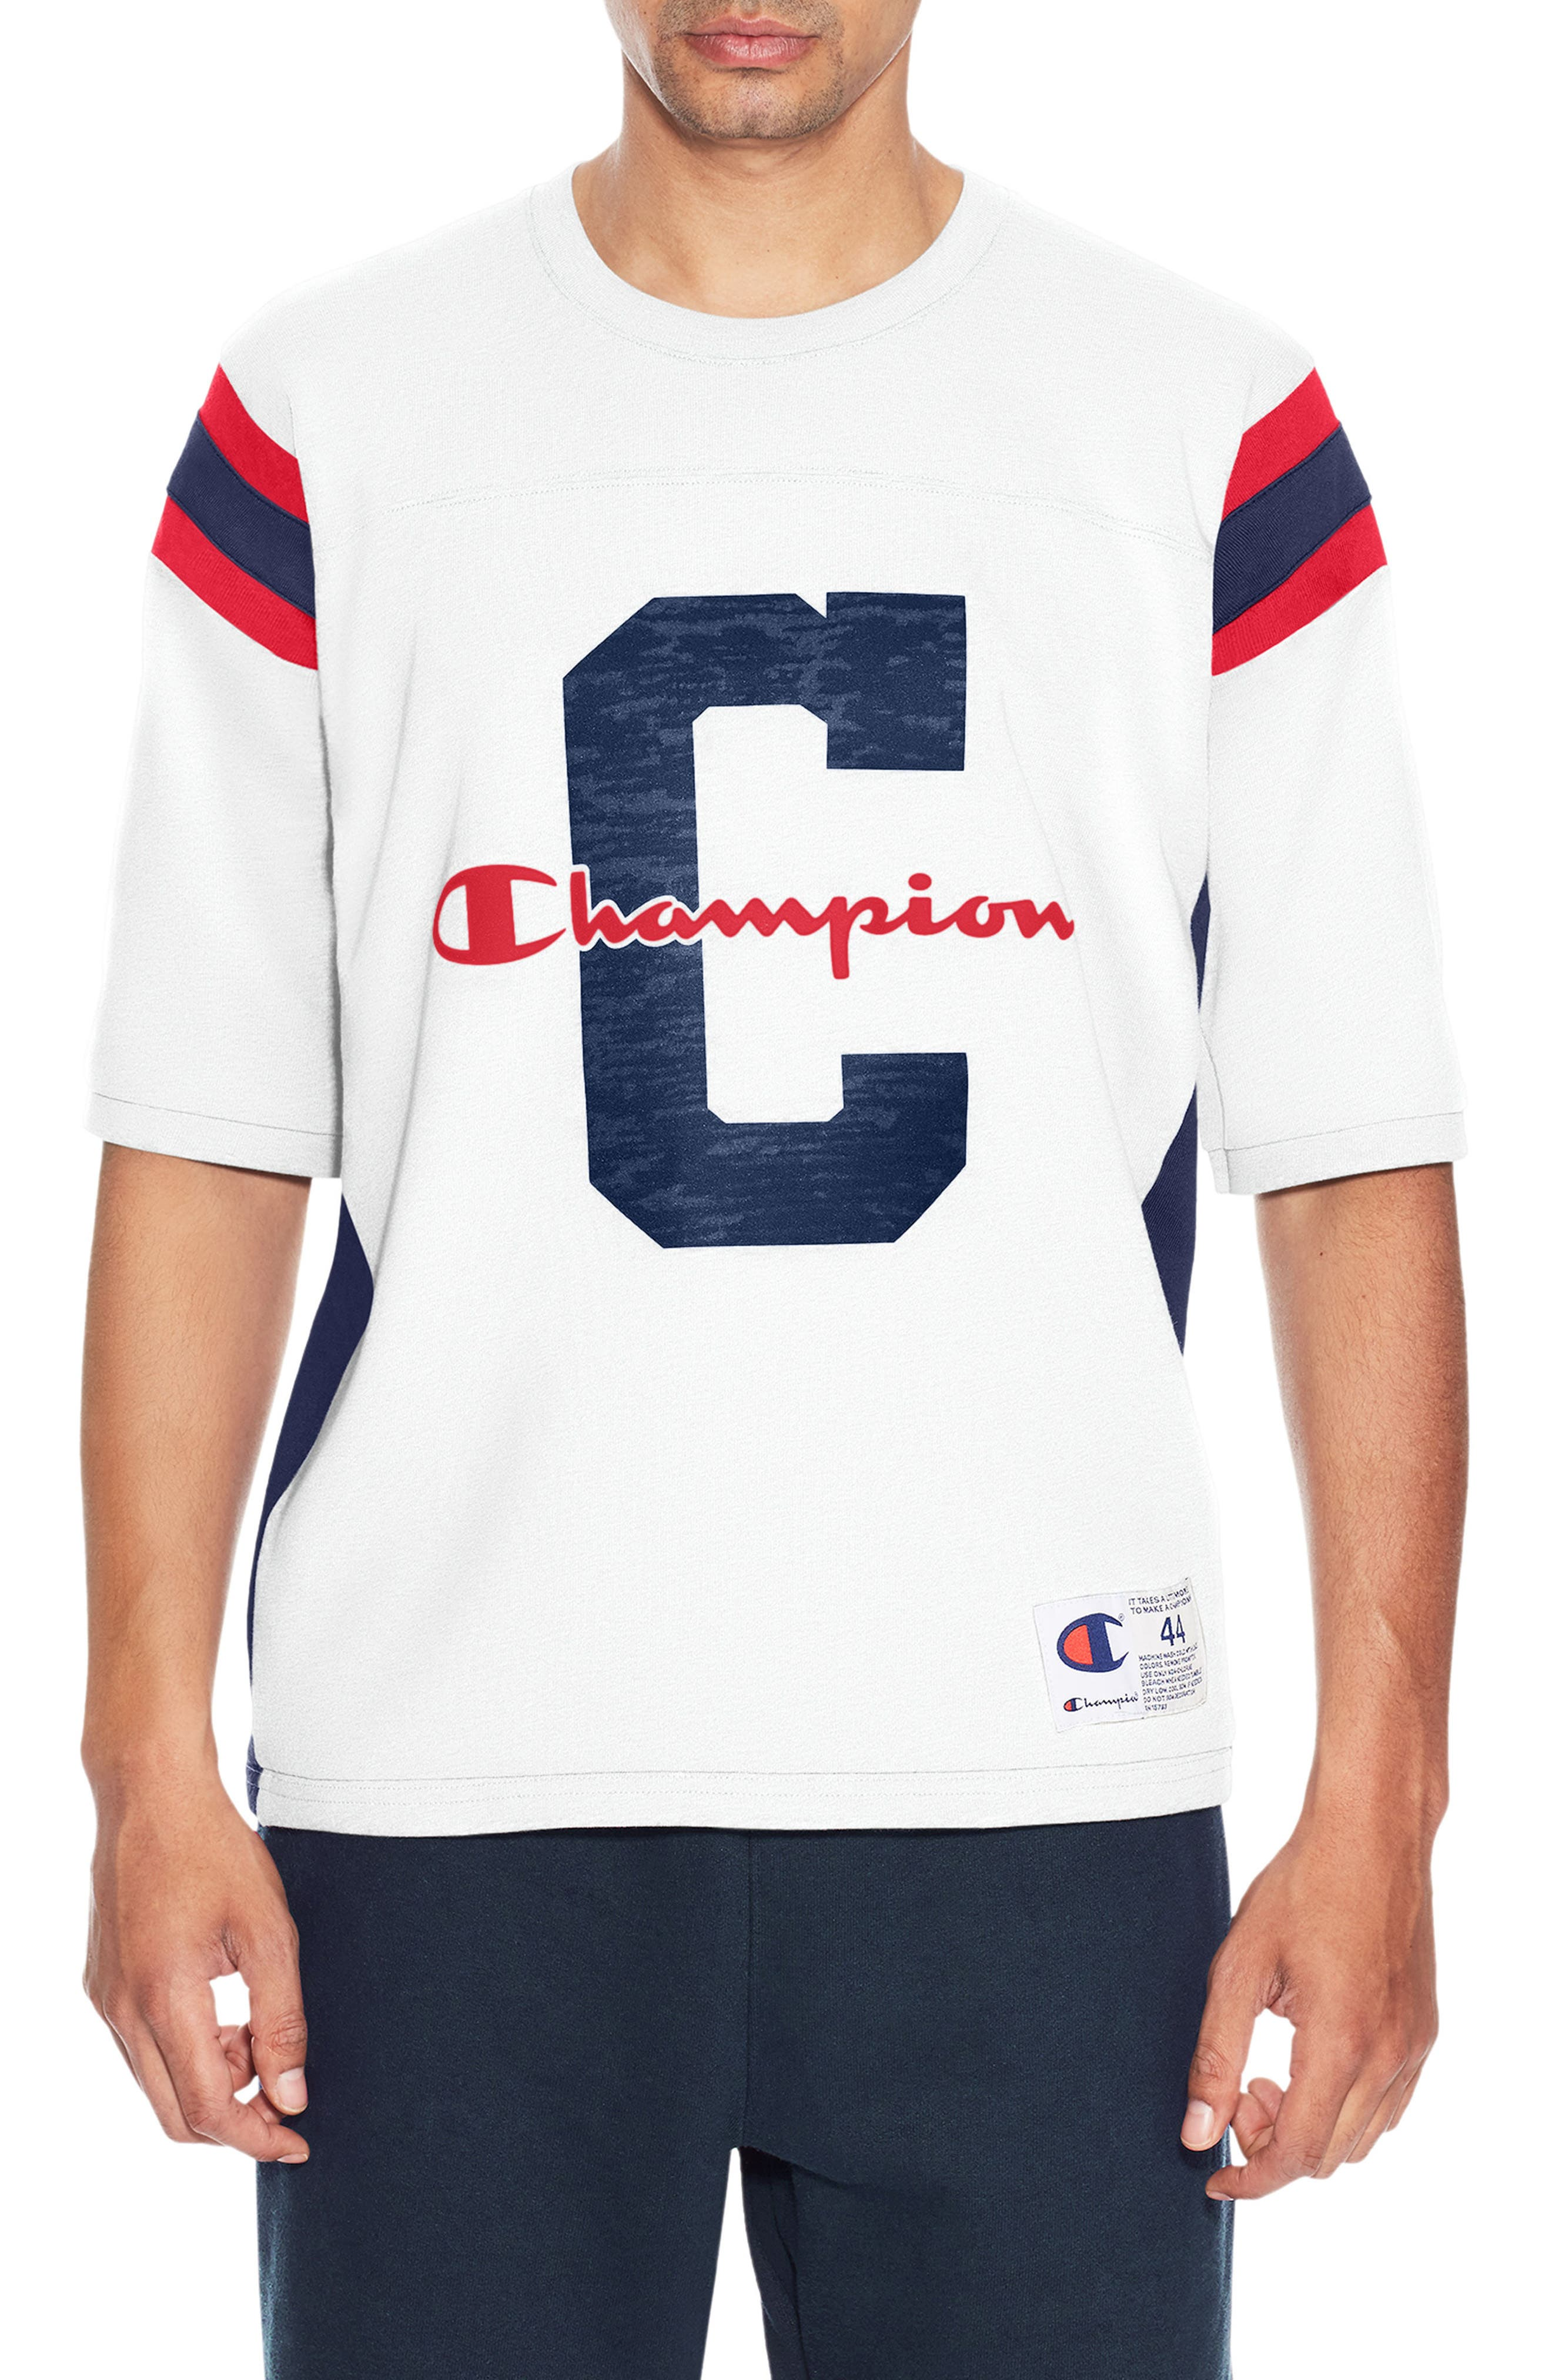 Heavyweight Football Jersey T-Shirt,                             Main thumbnail 1, color,                             White/ Imperial Indigio